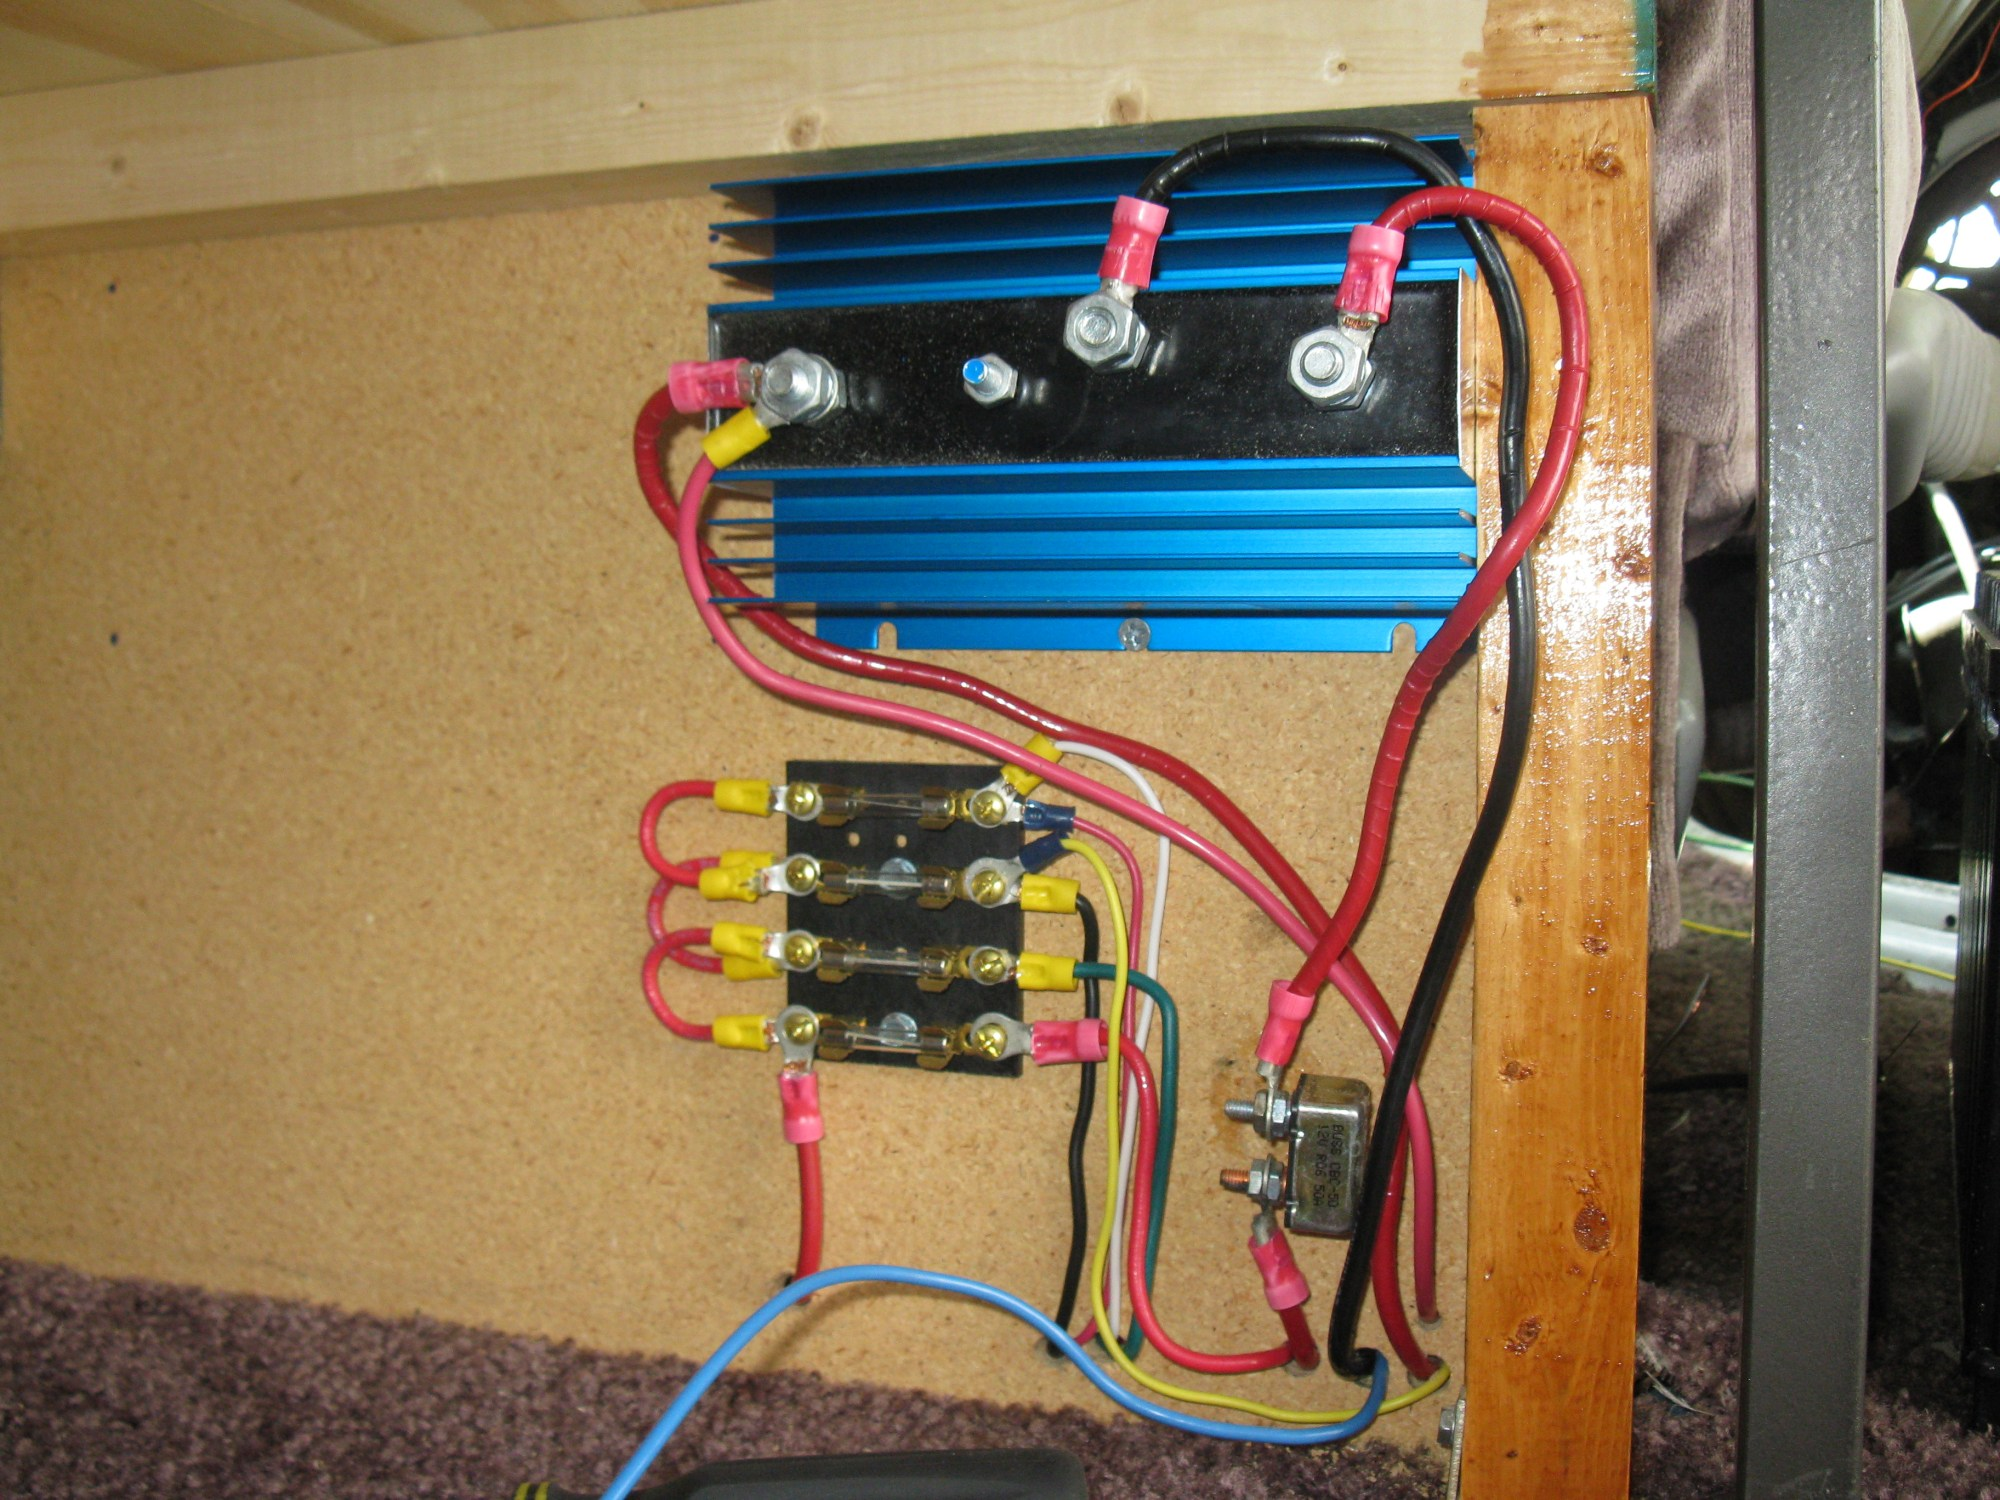 hight resolution of 12 volt fuse block and one of the circuit breakers